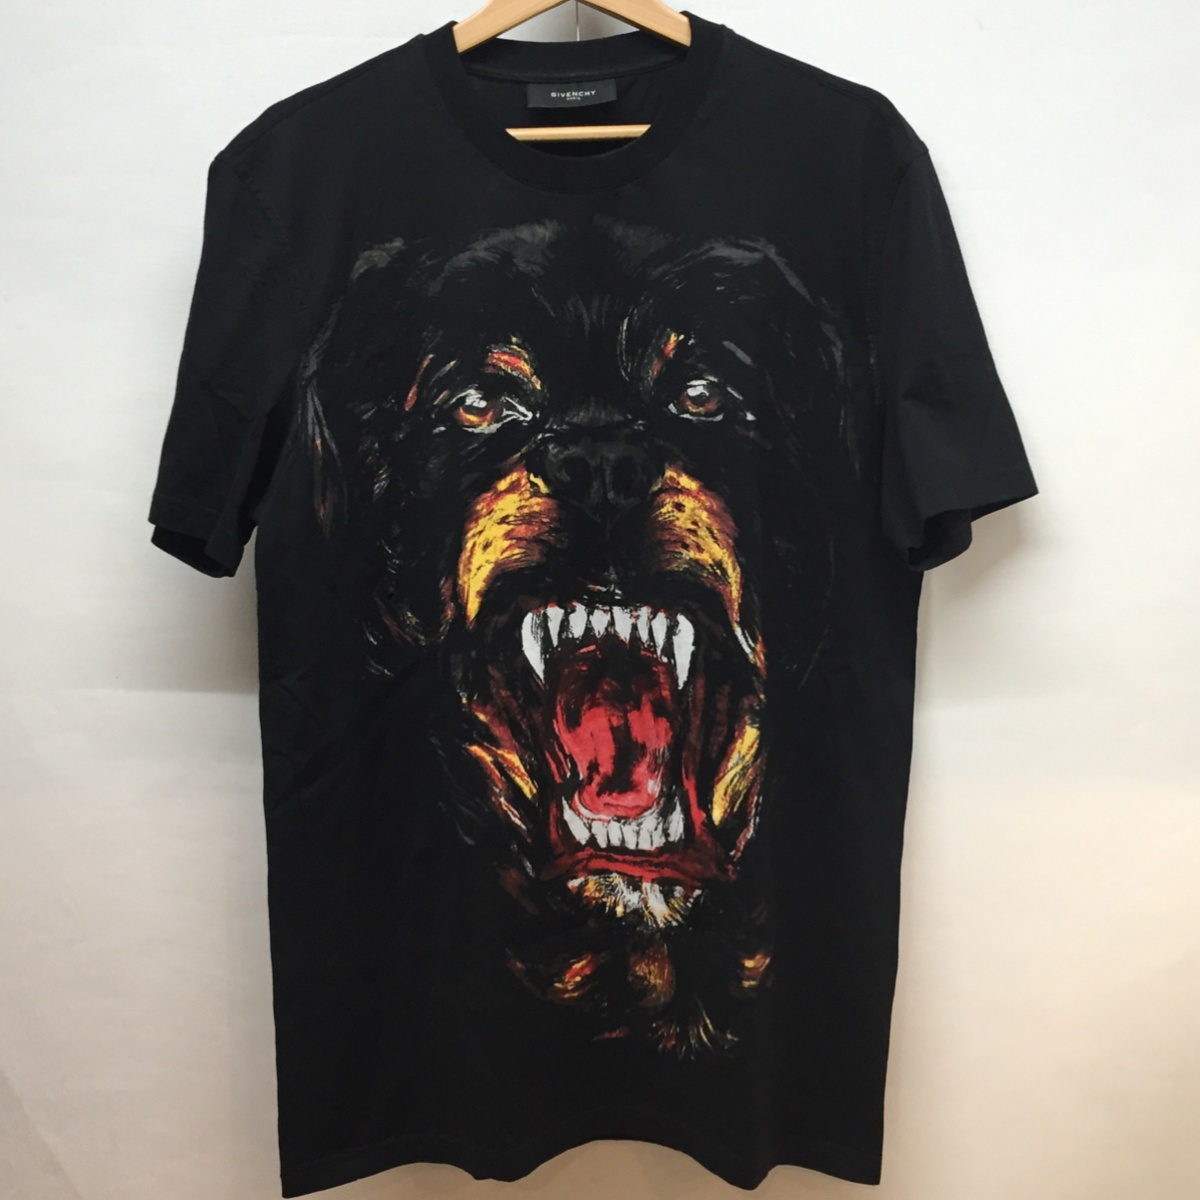 2011 Rottweiler print T-shirt /L size / black /11F 7073 651/ カルド ティッシ / collection / dog / dogs in the fall and winter